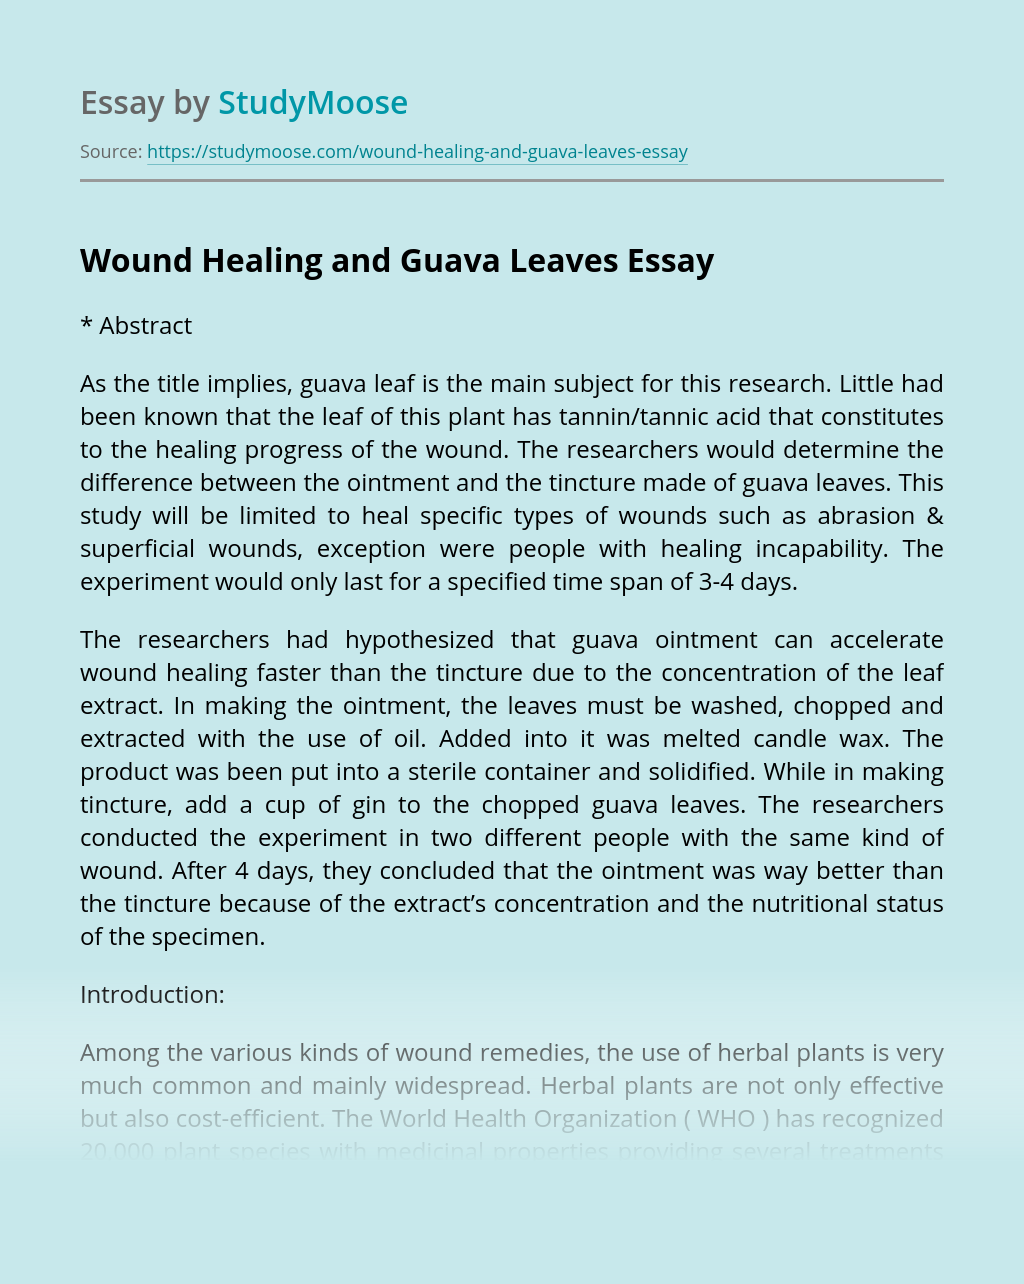 Wound Healing and Guava Leaves